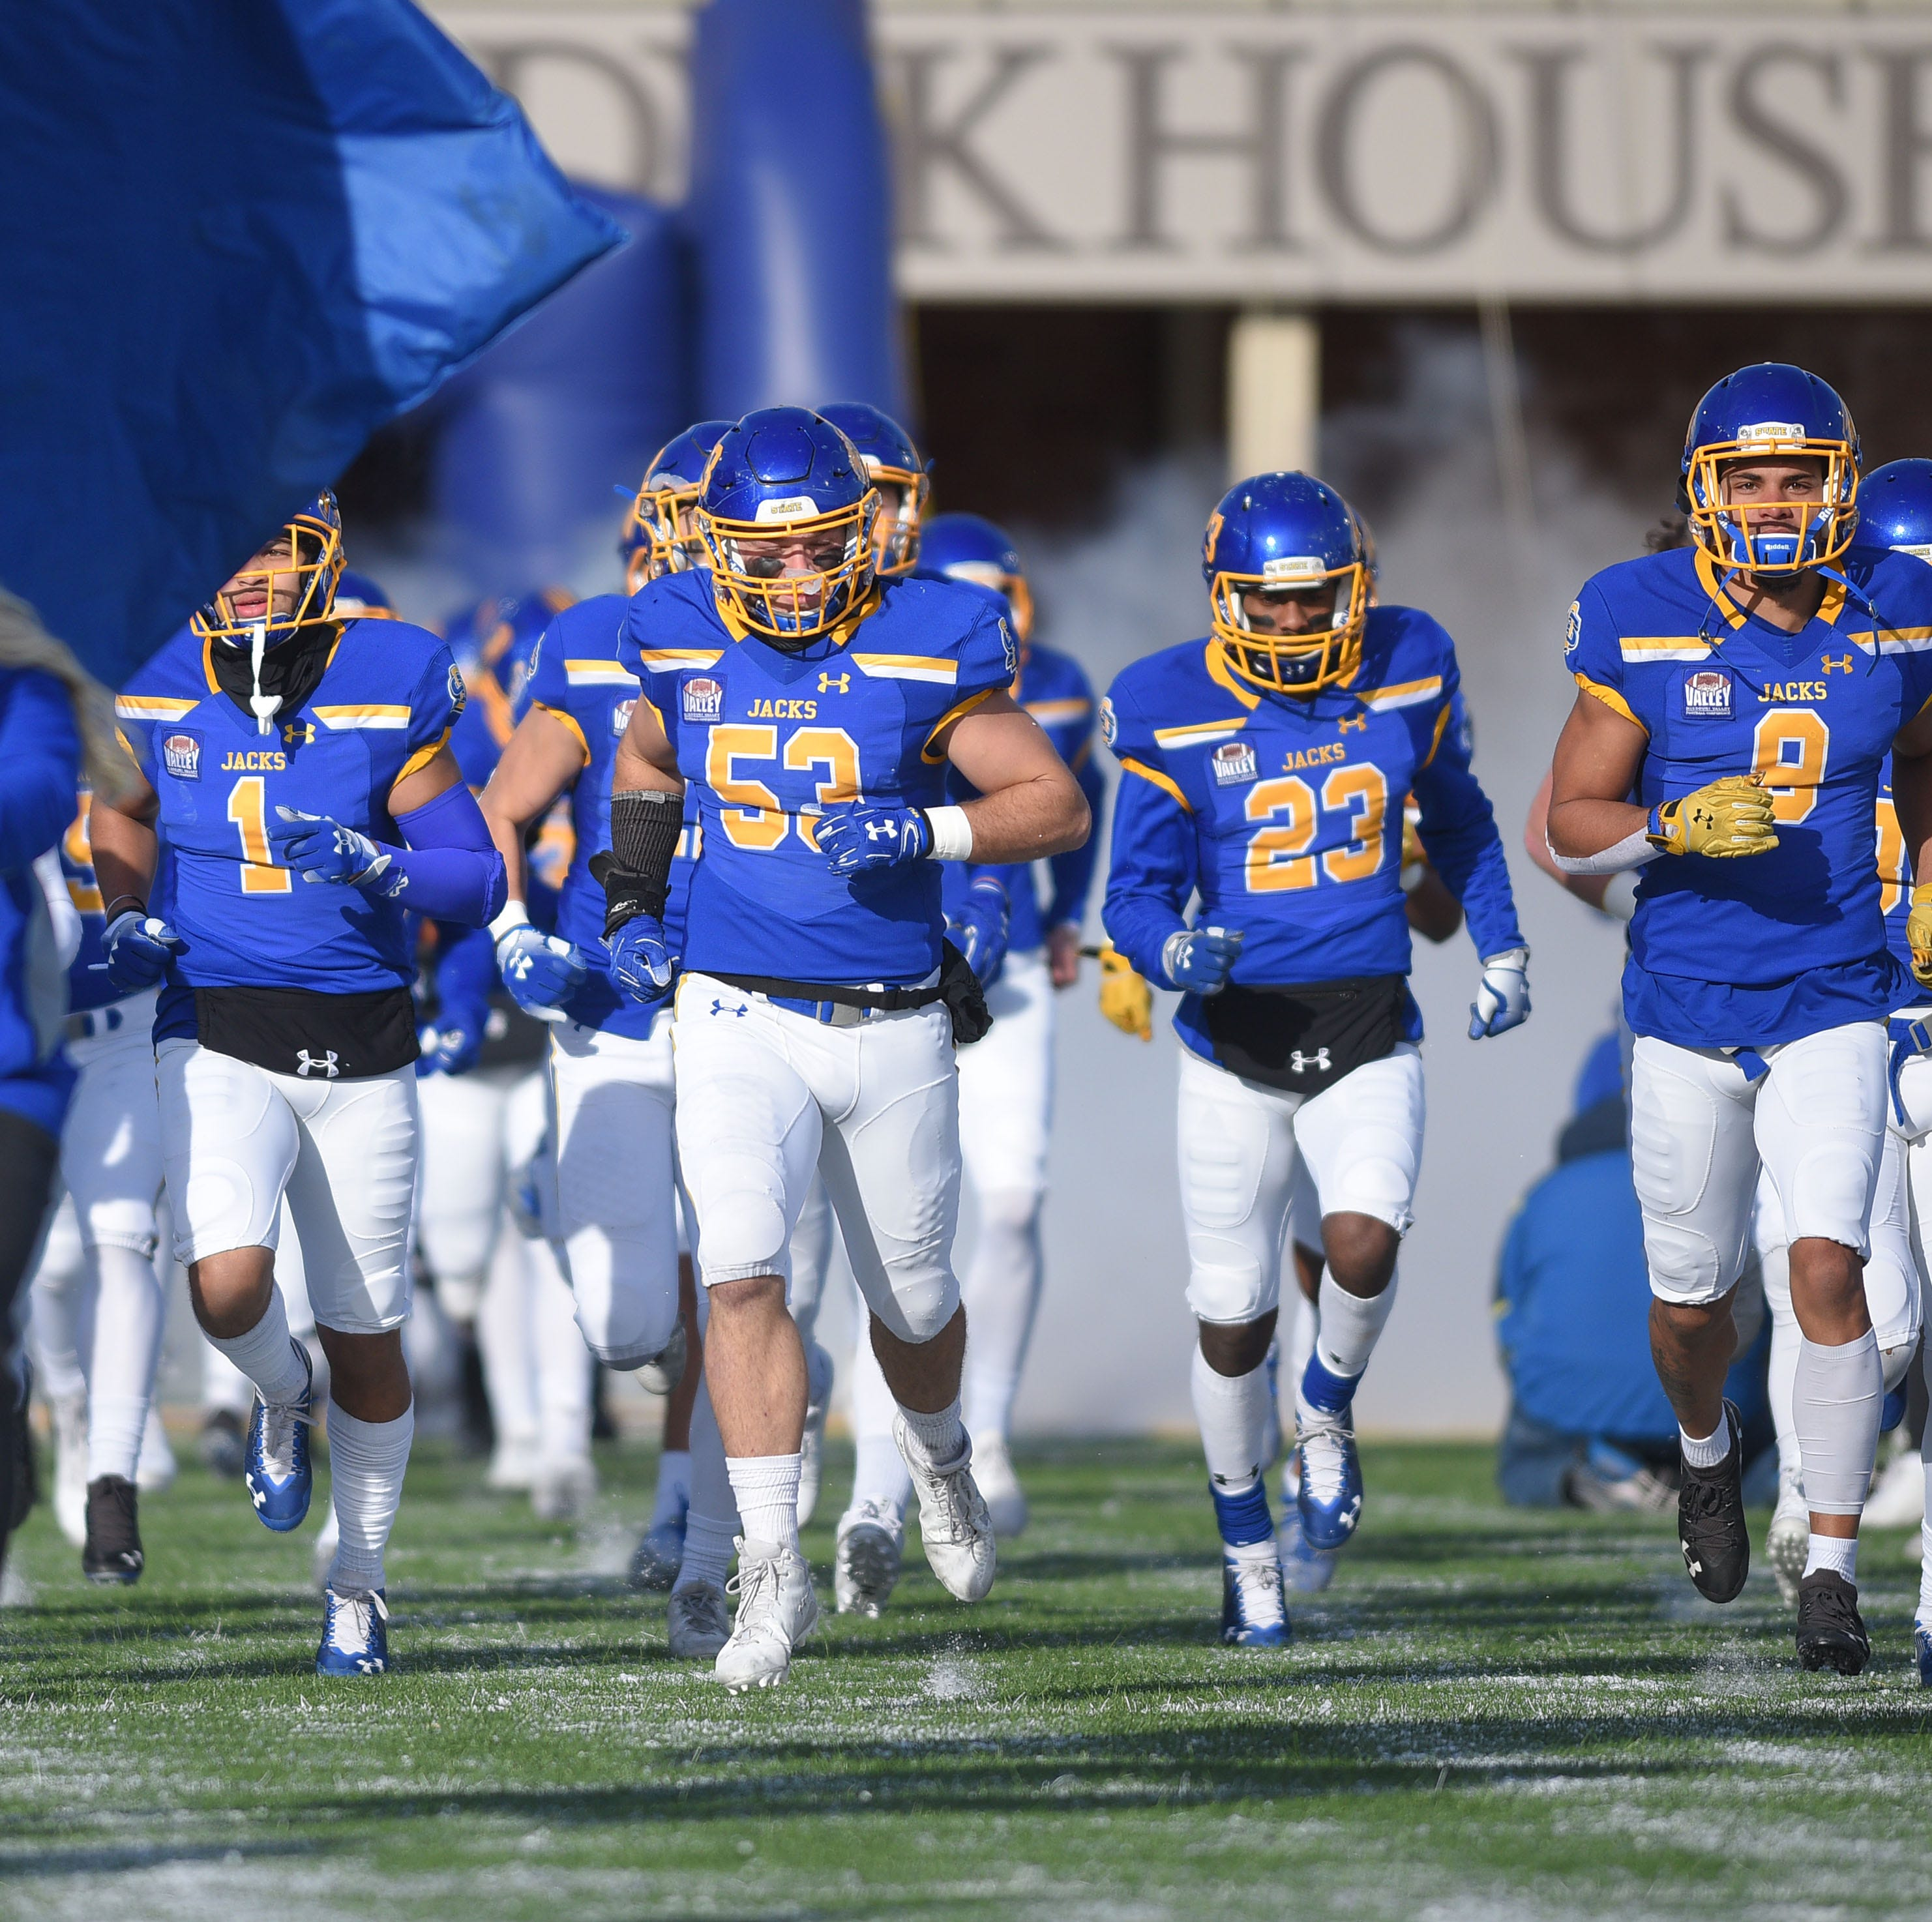 South Dakota State earns No. 5 seed in FCS playoffs